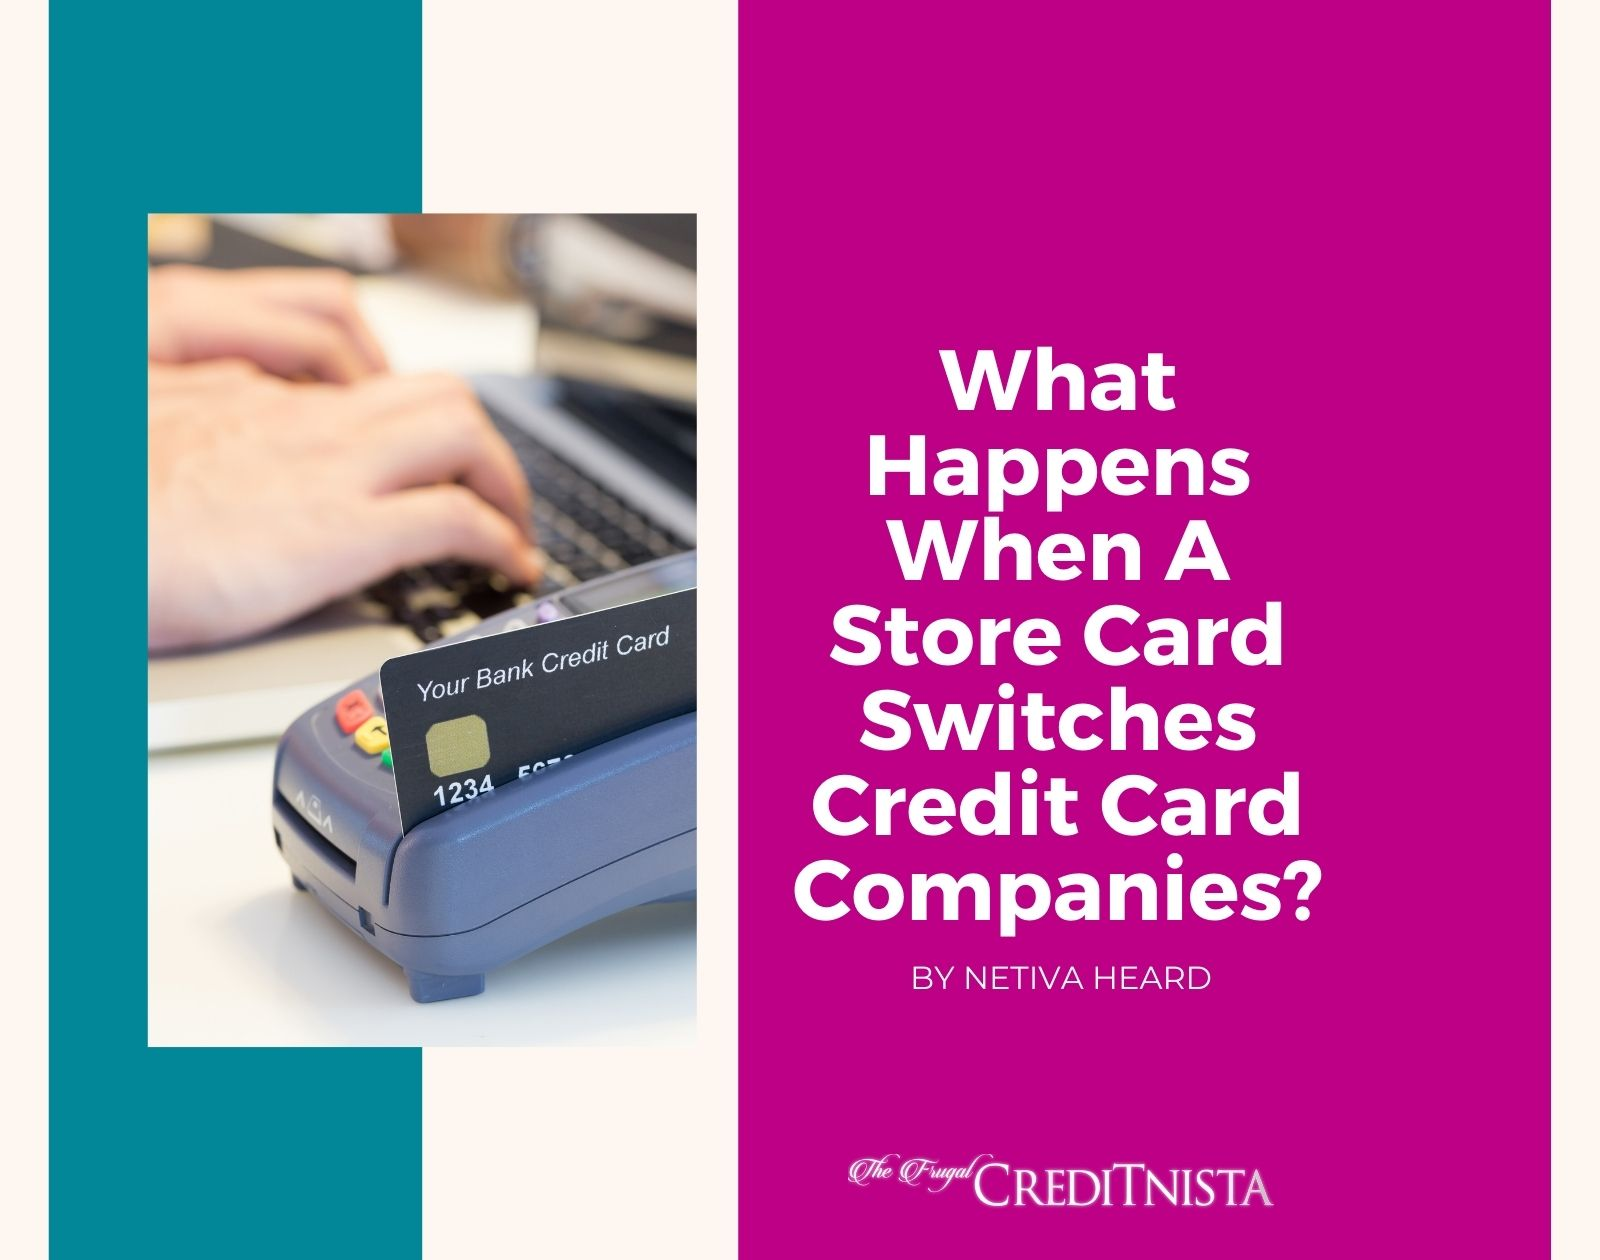 What to Do When A Store Card Switches Credit Card Companies